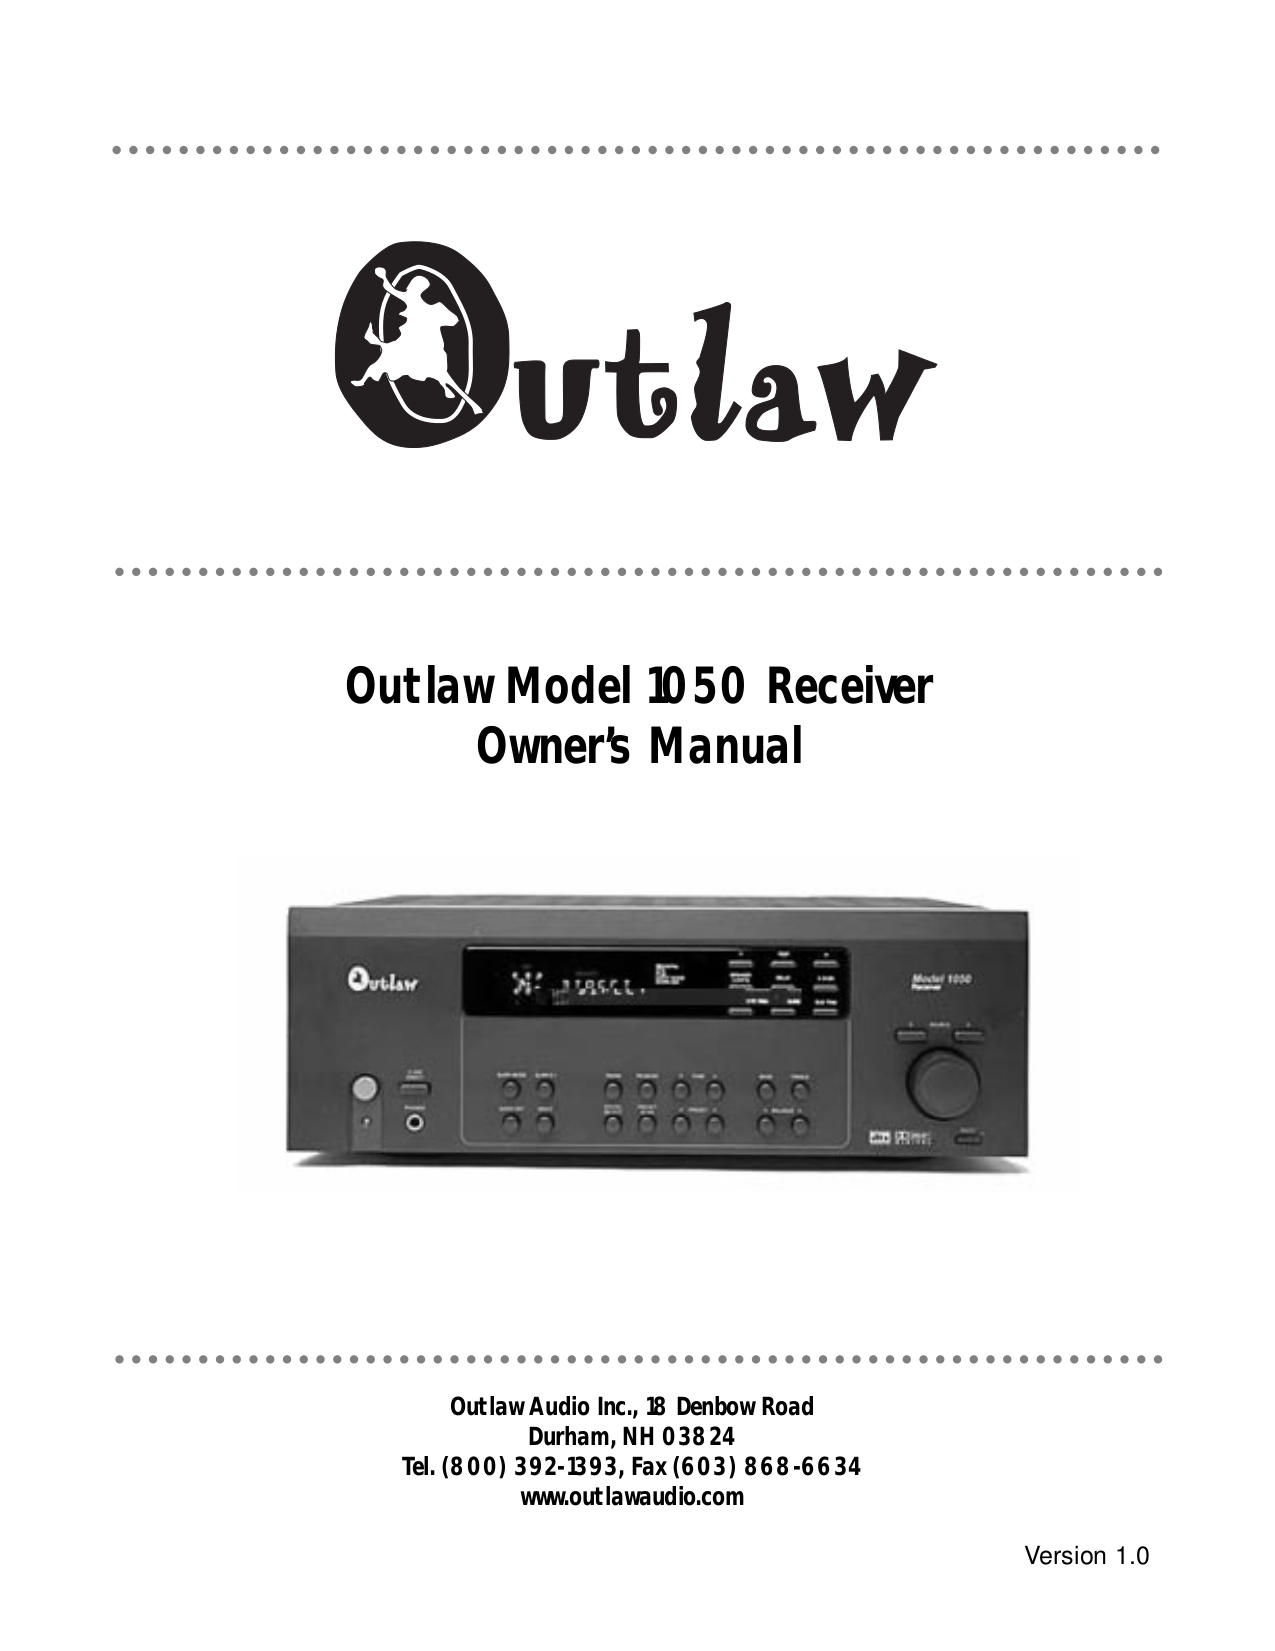 pdf for Outlaw Amp 950 manual